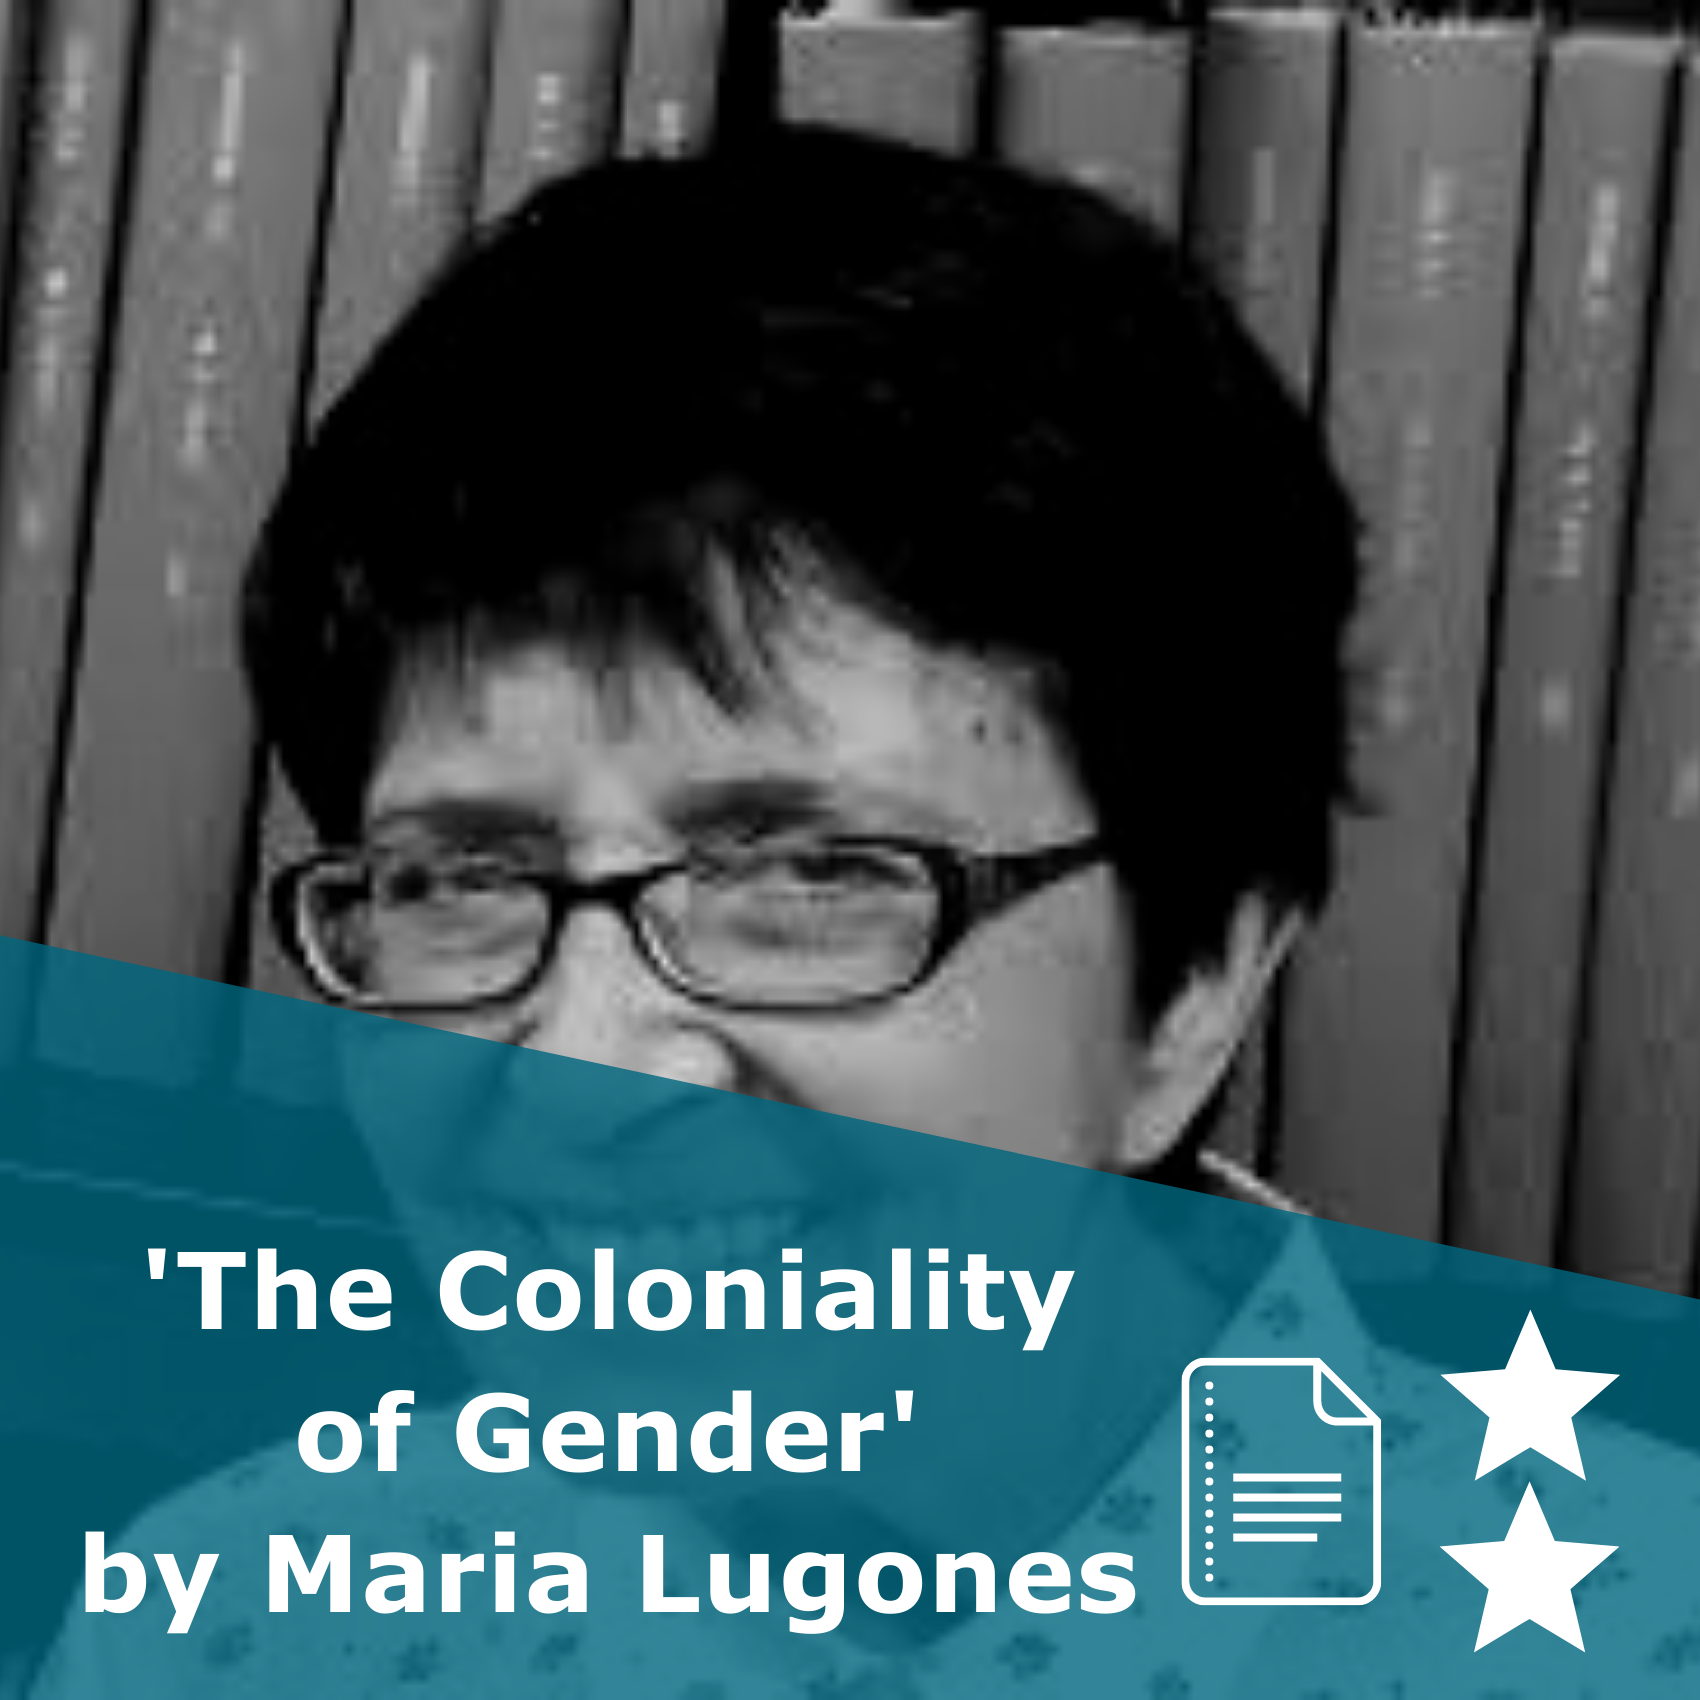 Picture of Maria Lugones. Title 'The Coloniality of Gender'. It is an article rated 1 stars.